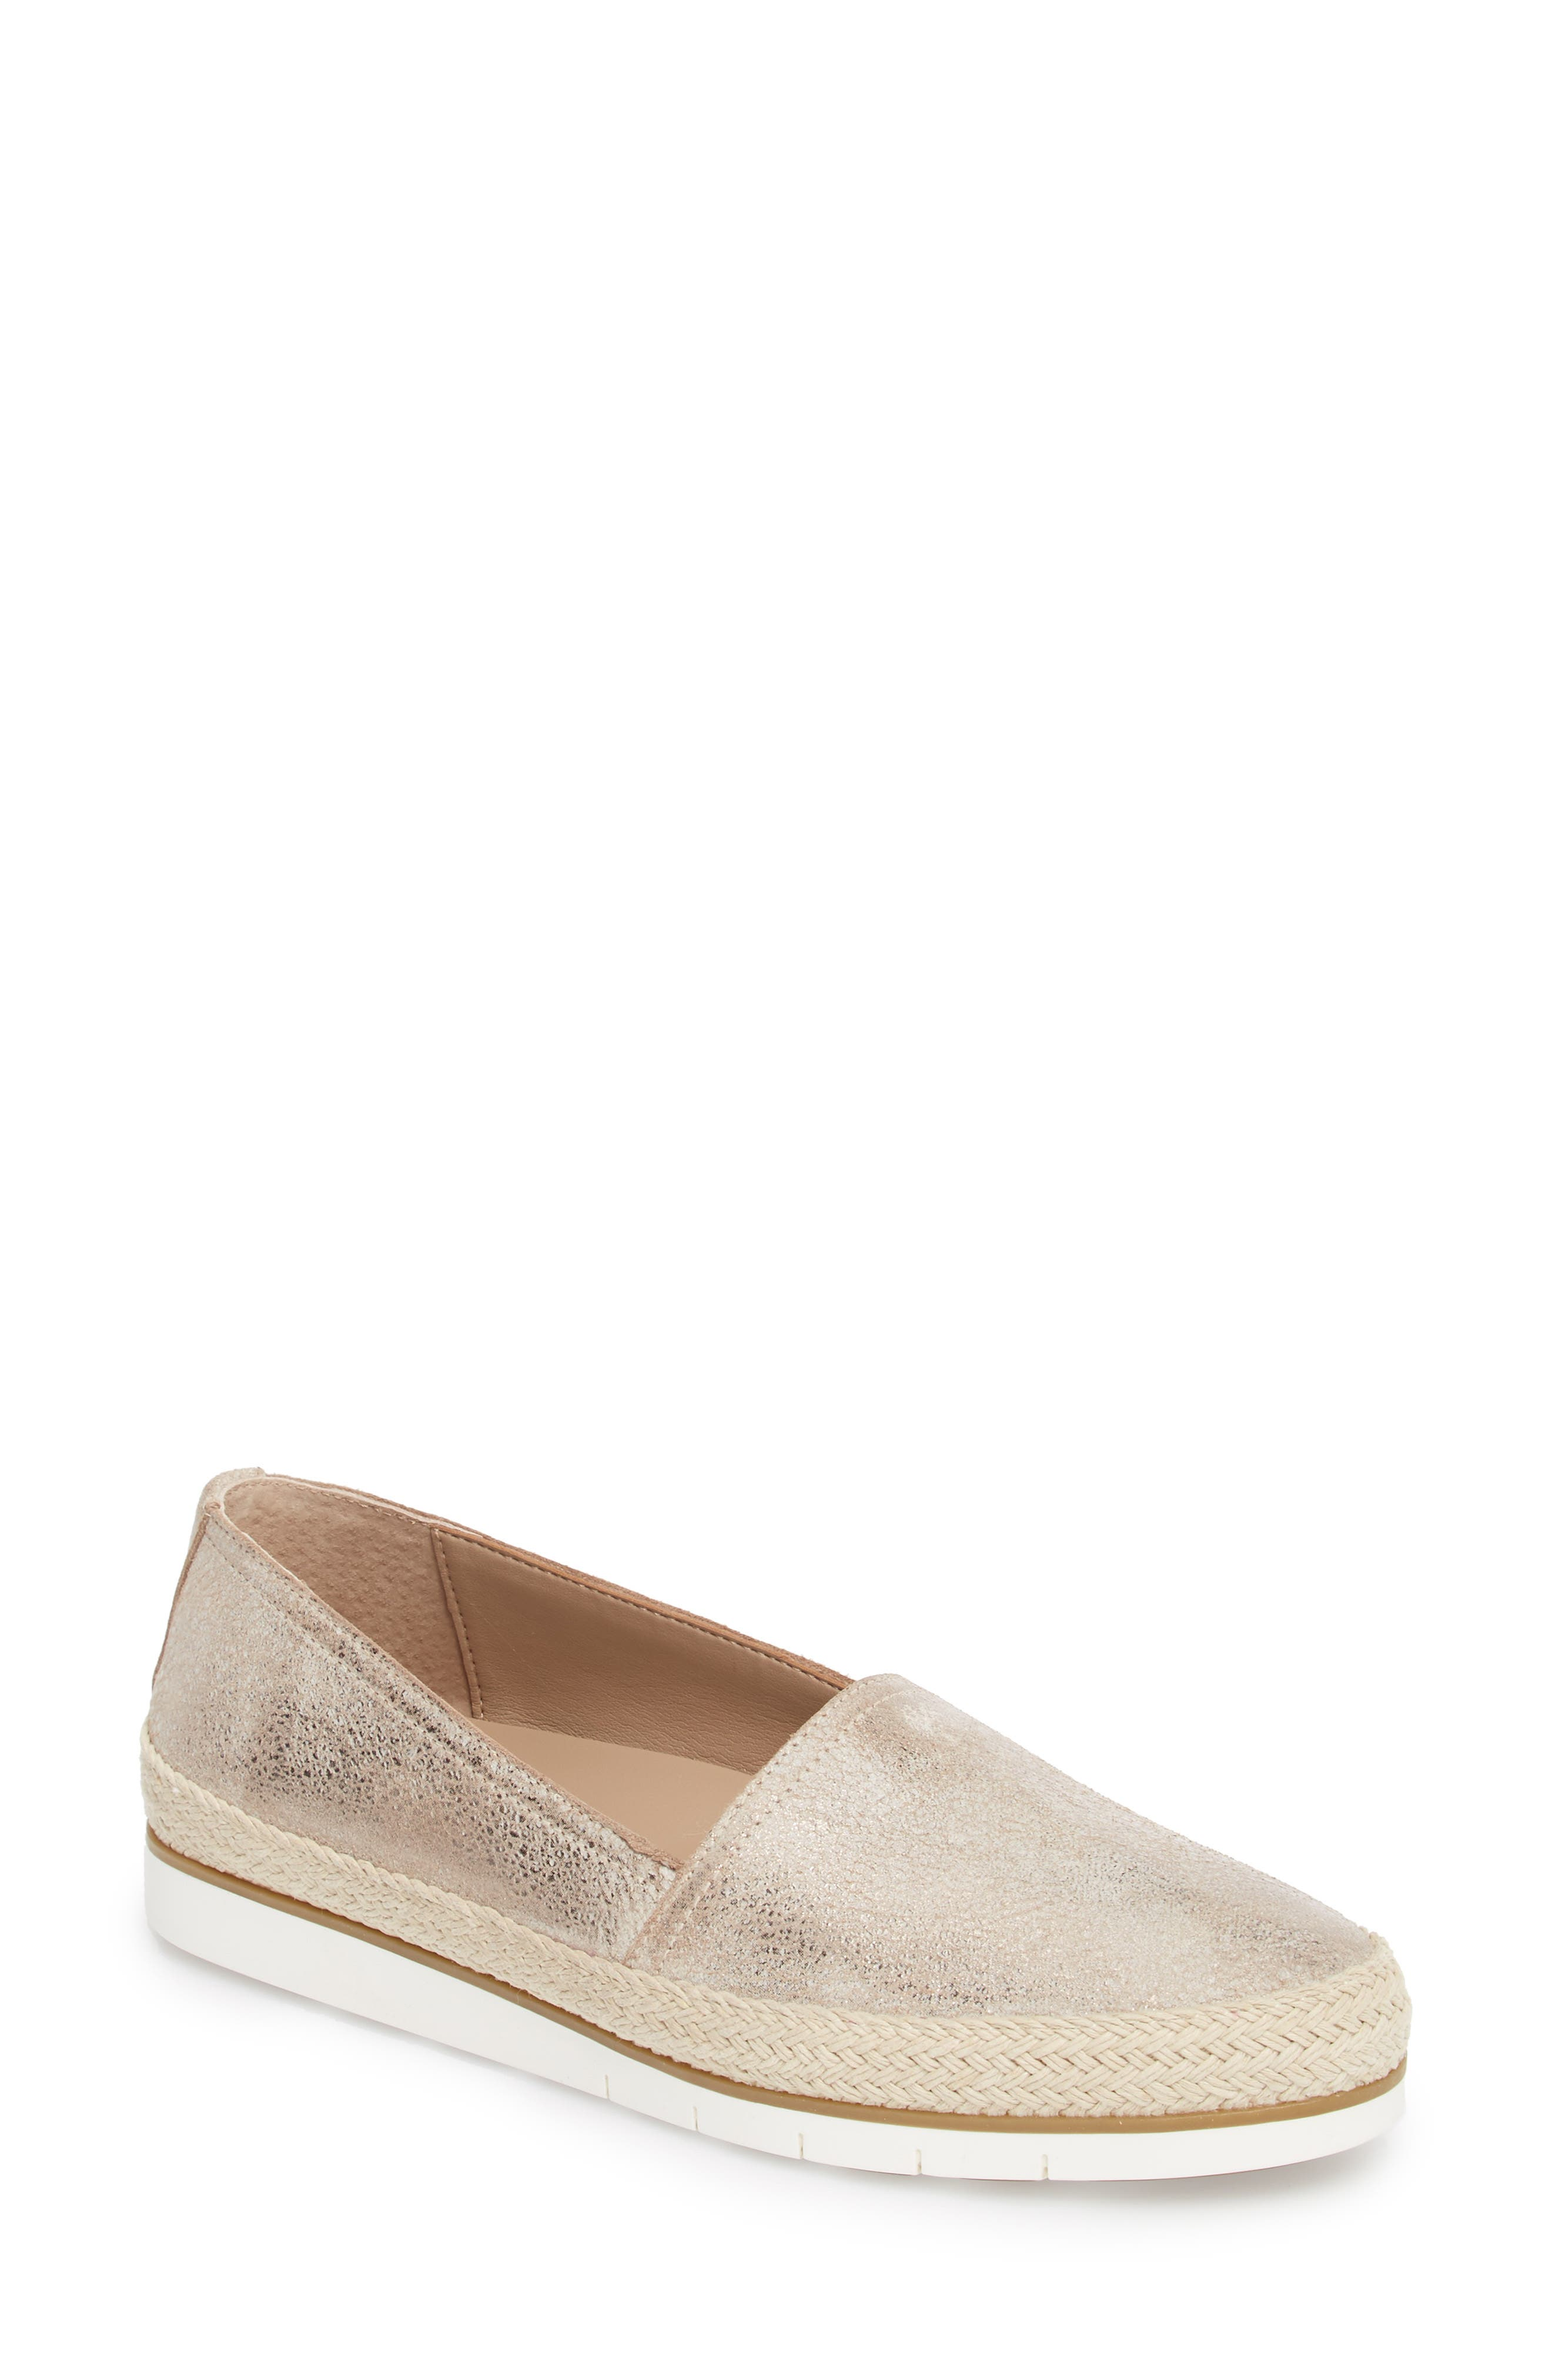 Palm Slip-On Sneaker,                             Main thumbnail 1, color,                             TAUPE FABRIC